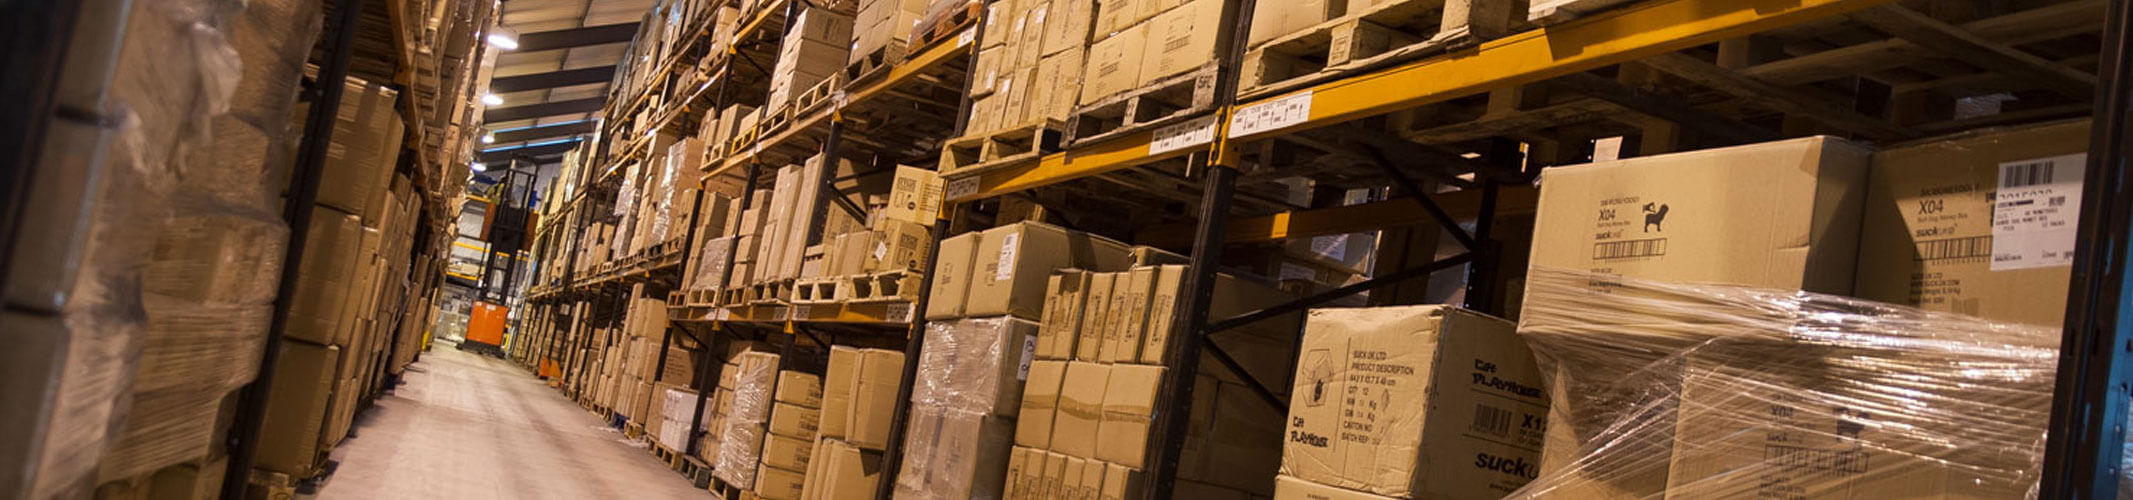 trade counter distribution warehouse aisle